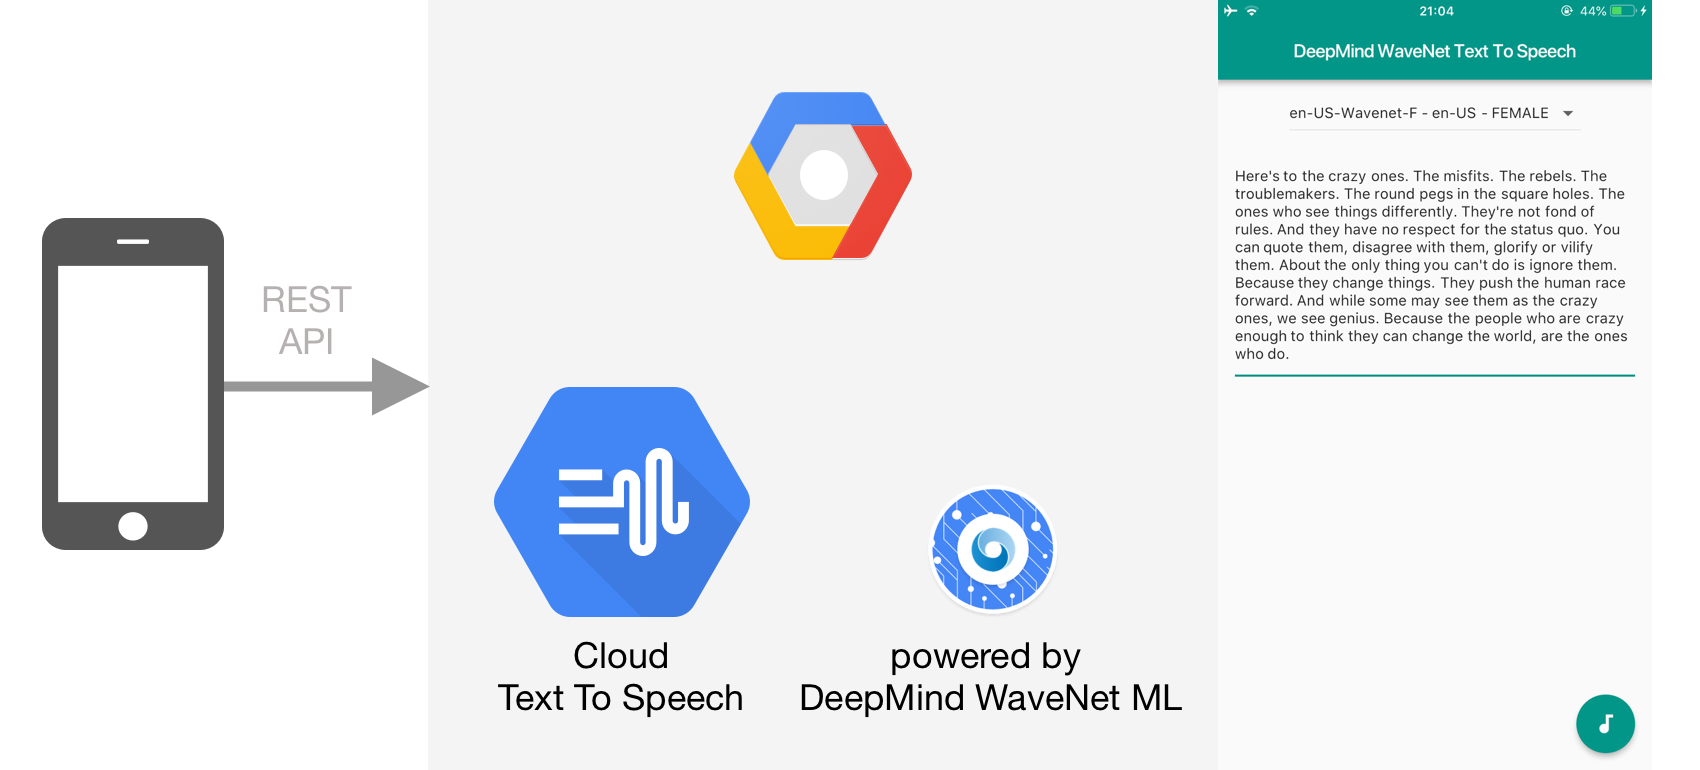 Mobile App That Speaks with DeepMind WaveNet Google Cloud